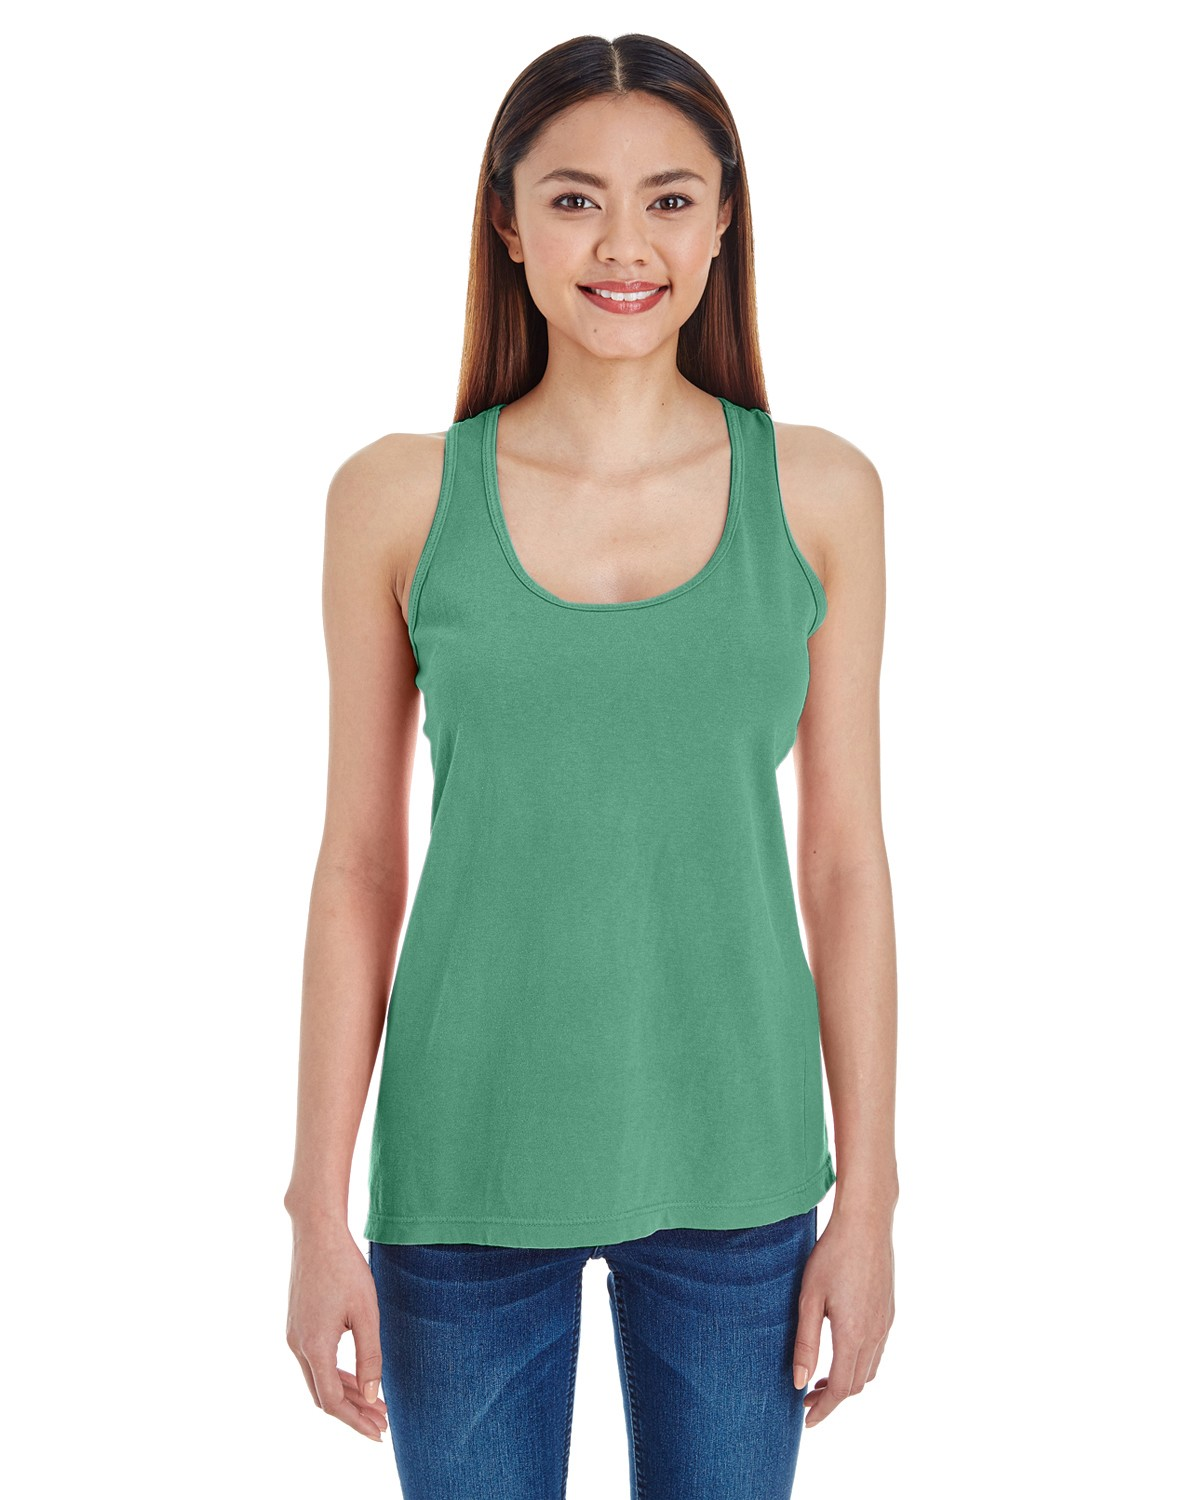 4260L Comfort Colors ISLAND GREEN